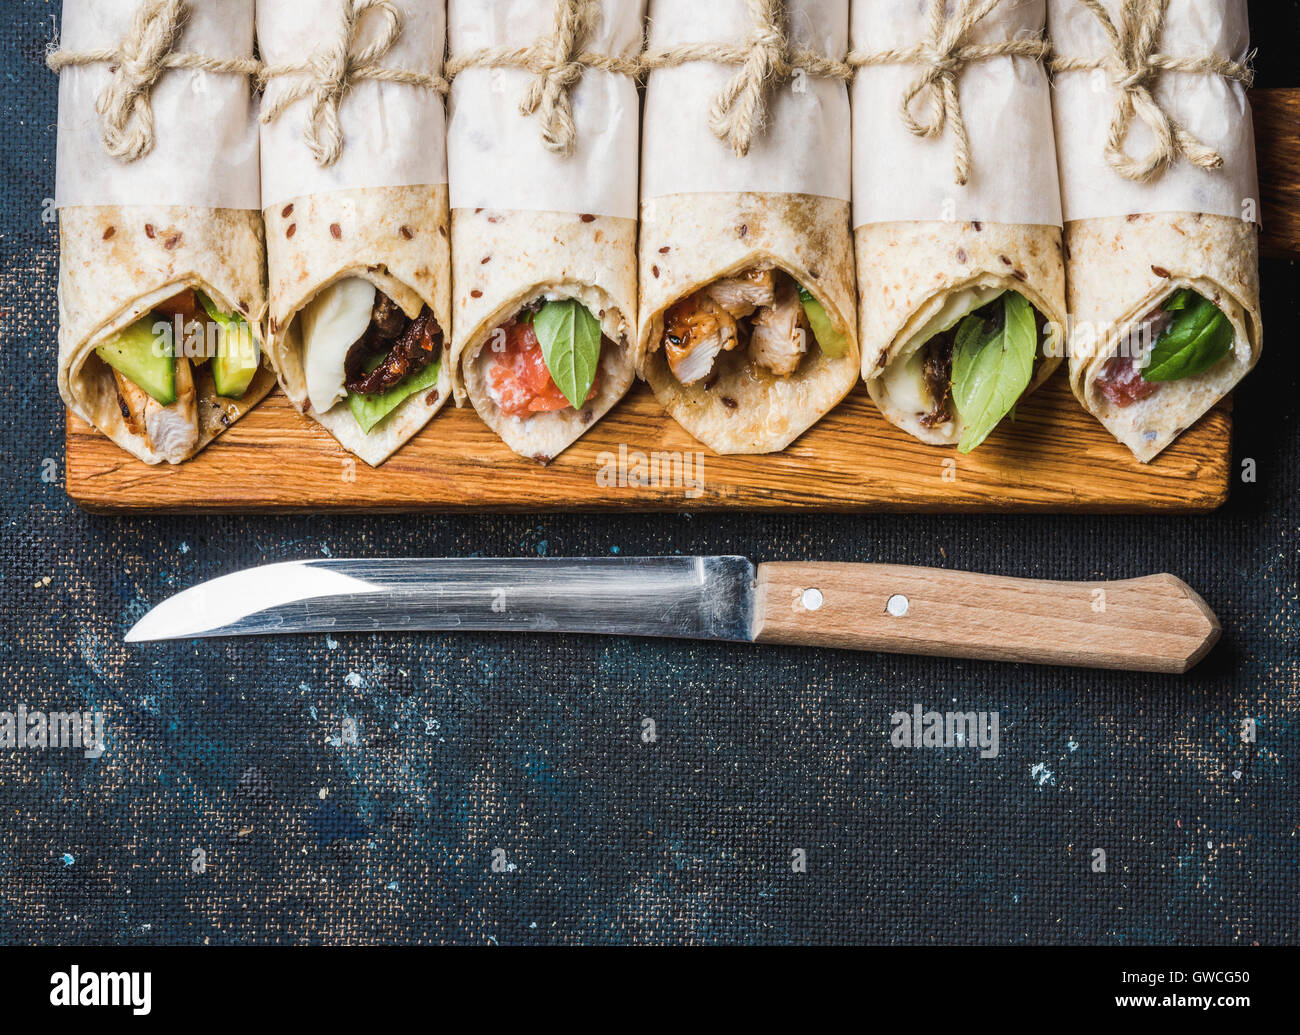 Tortilla wraps with various fillings on rustic wooden board and knife over dark blue painted plywood background, - Stock Image